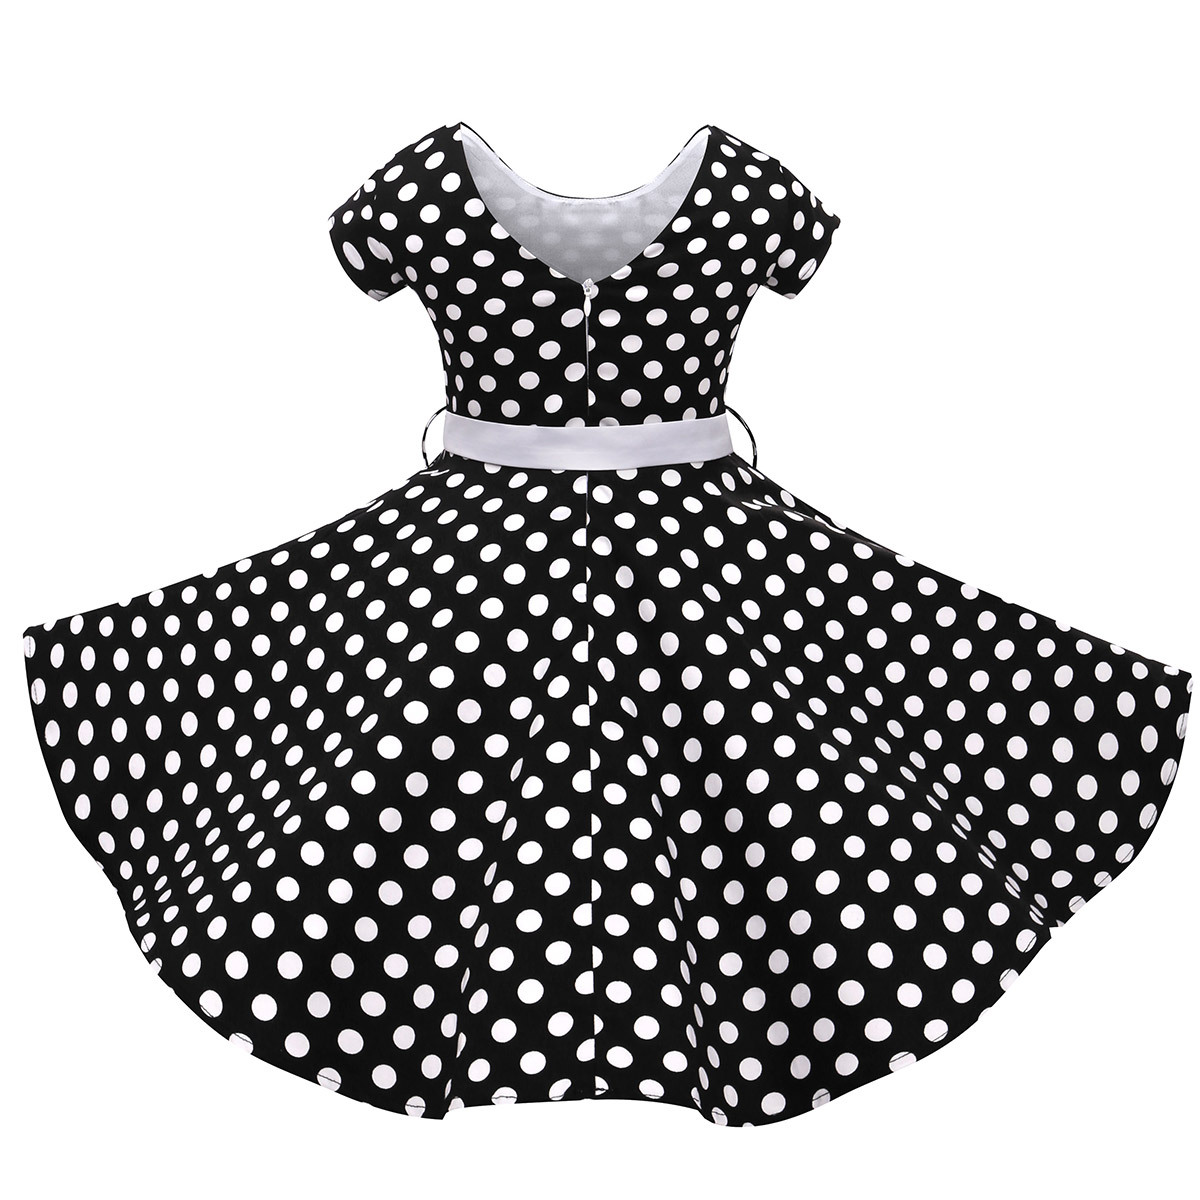 2019 New Girls Dress Fashion Kids Ball Gowns Junior Girls Prom Dresses  Fancy Children Teenage Dot Print Clothes 8 10 12 Years-in Dresses from  Mother   Kids ... f7125f637648